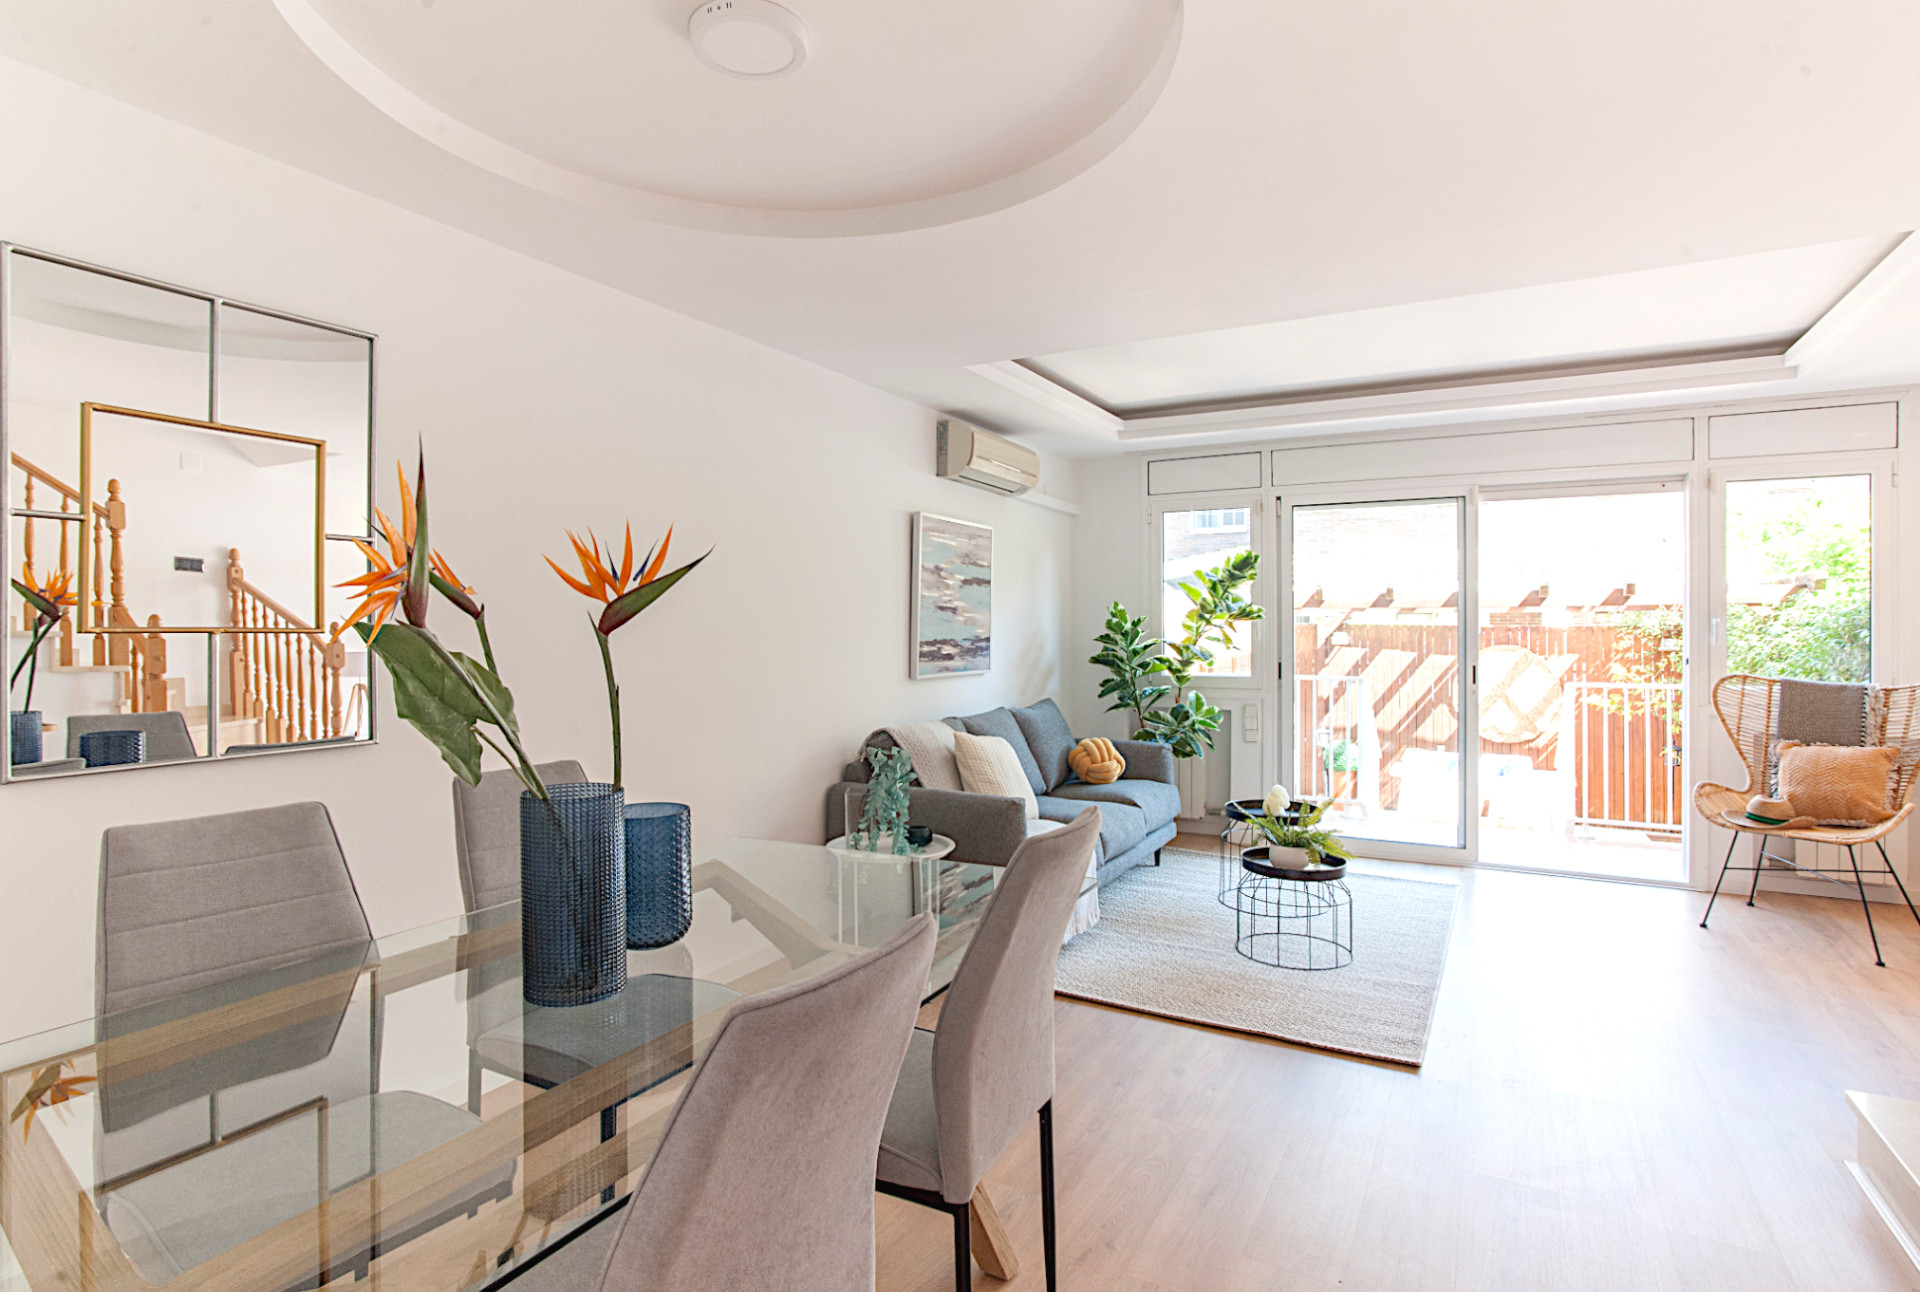 Markham Stagers home staging Castelldefels